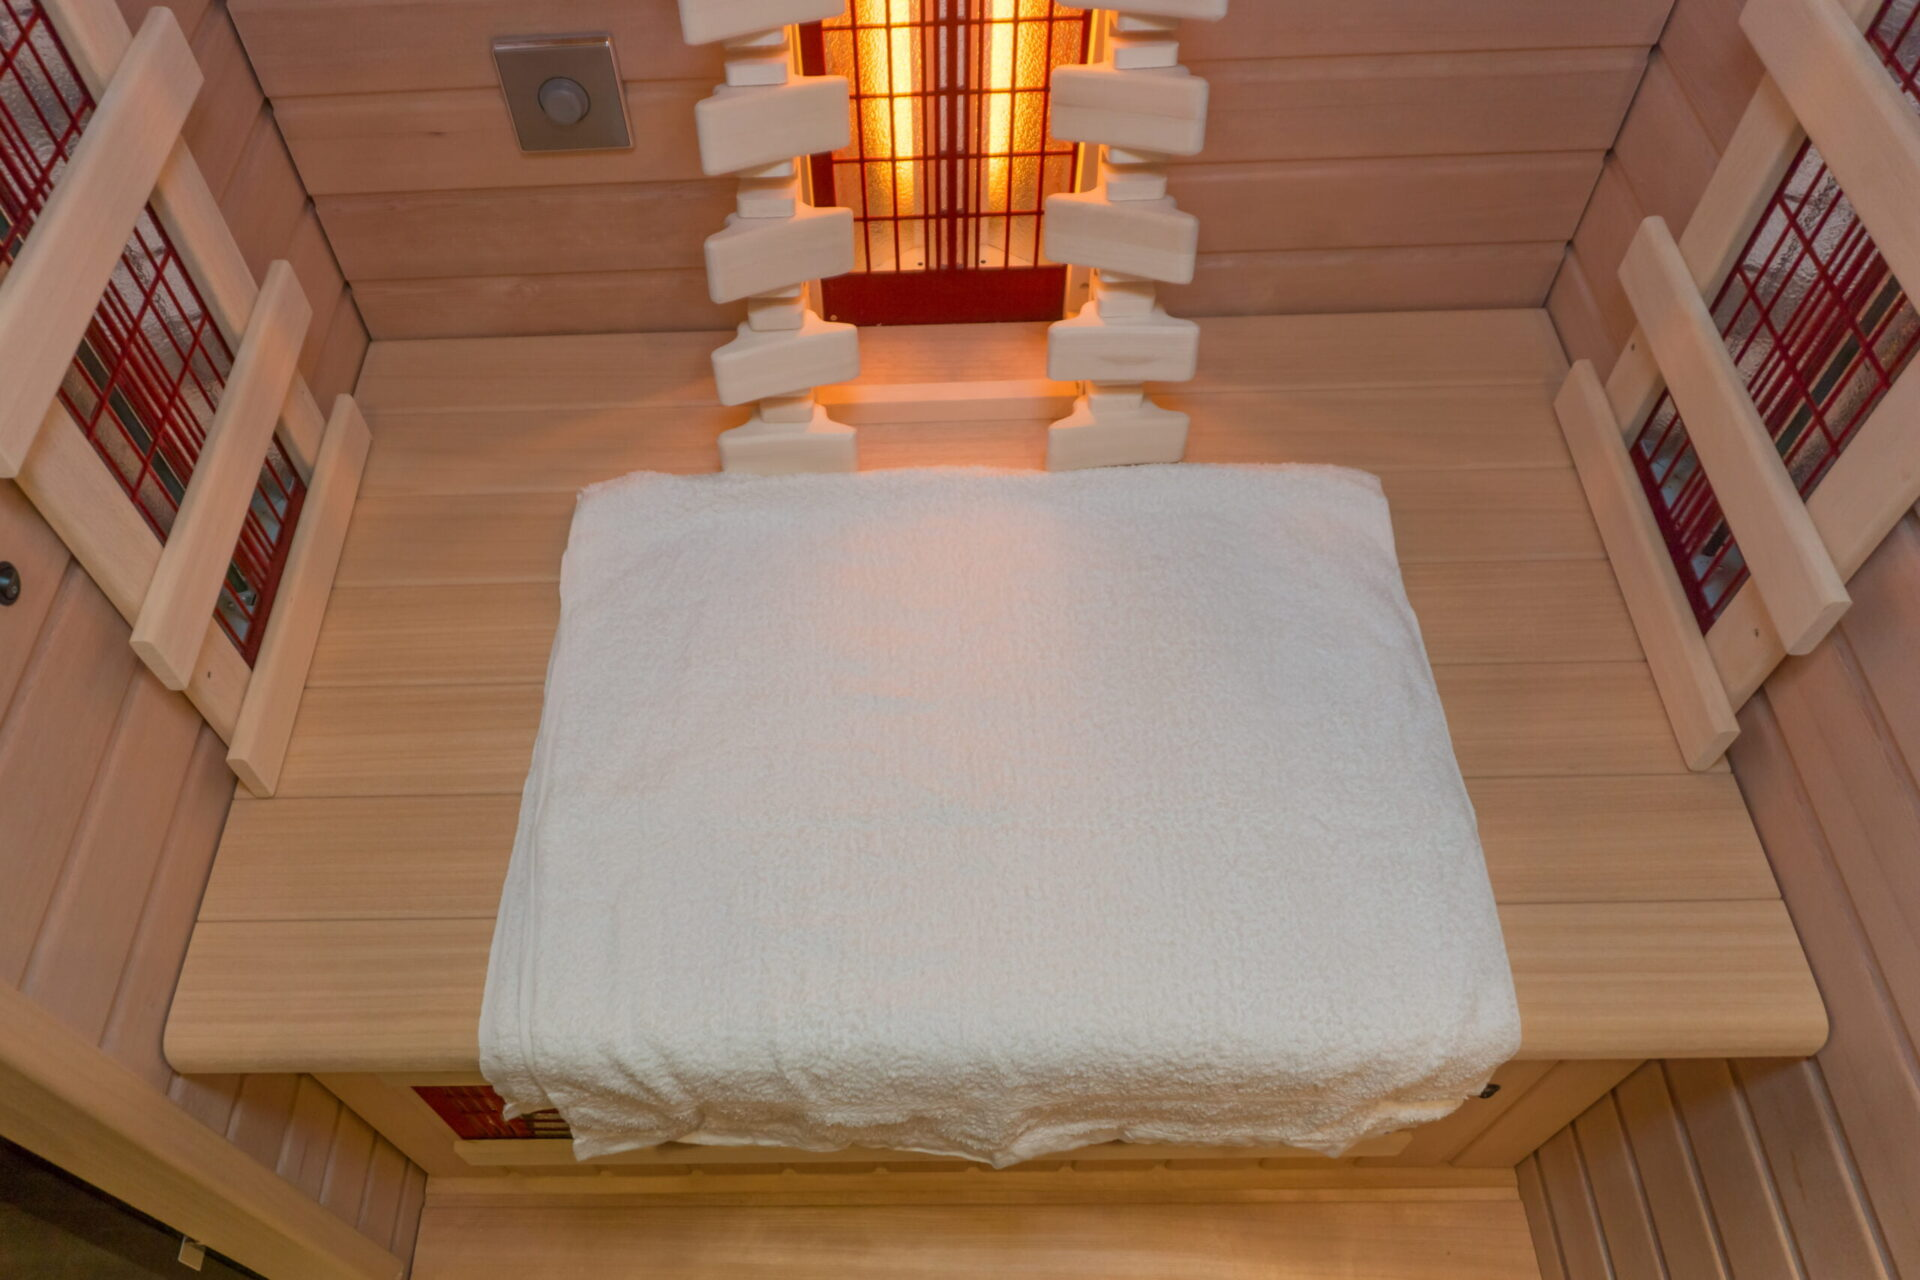 The inside of an infrared sauna